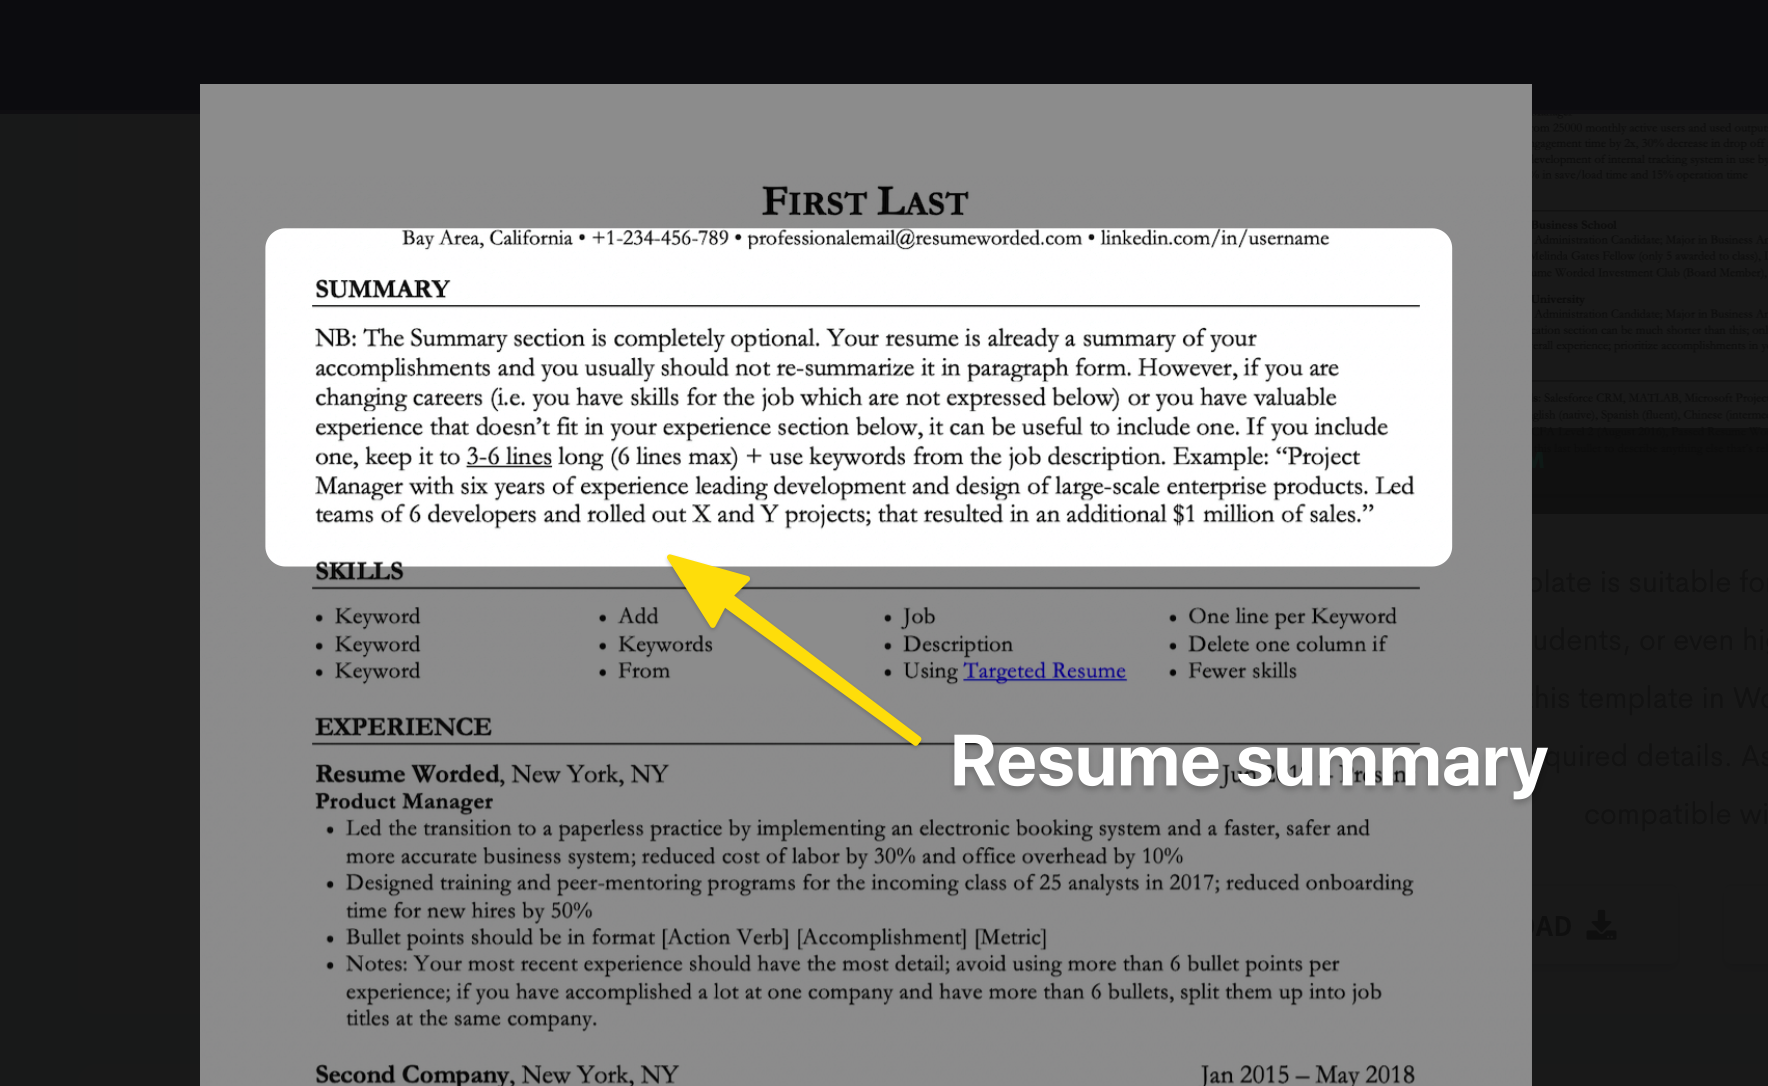 how to write a resume summary if you're changing careers